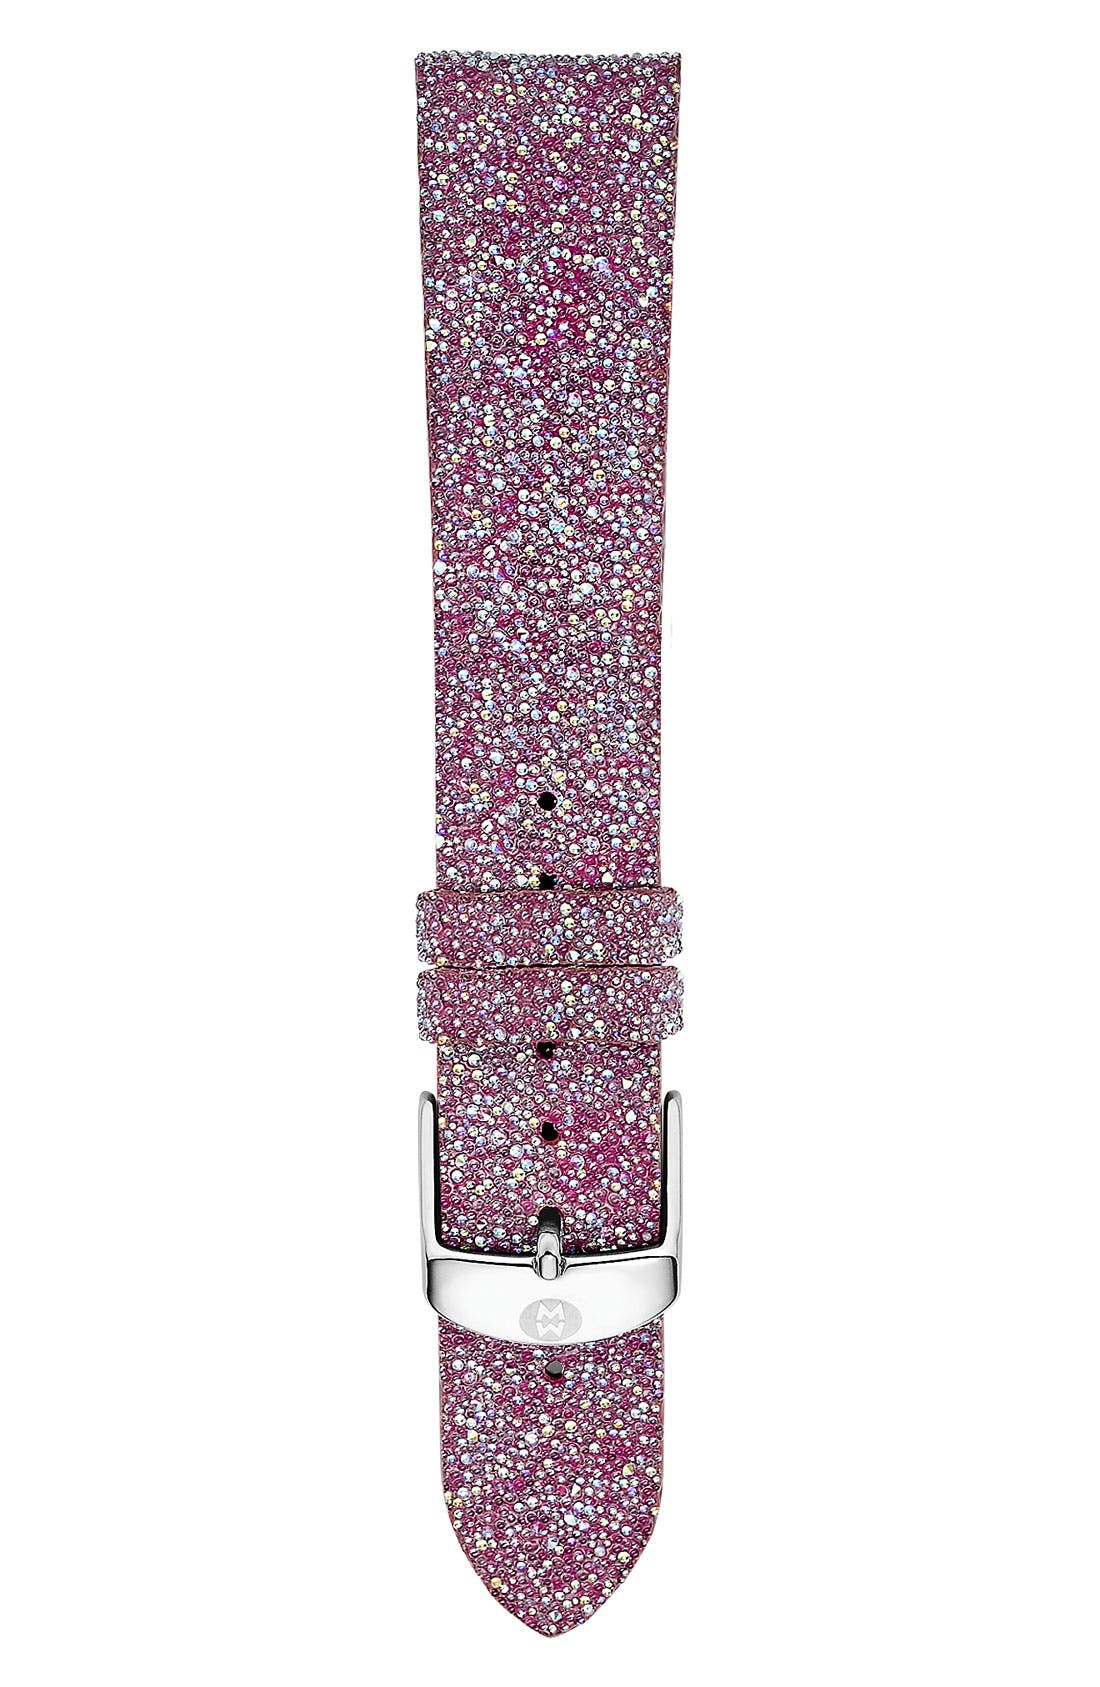 Main Image - MICHELE 16mm Glitter Watch Strap